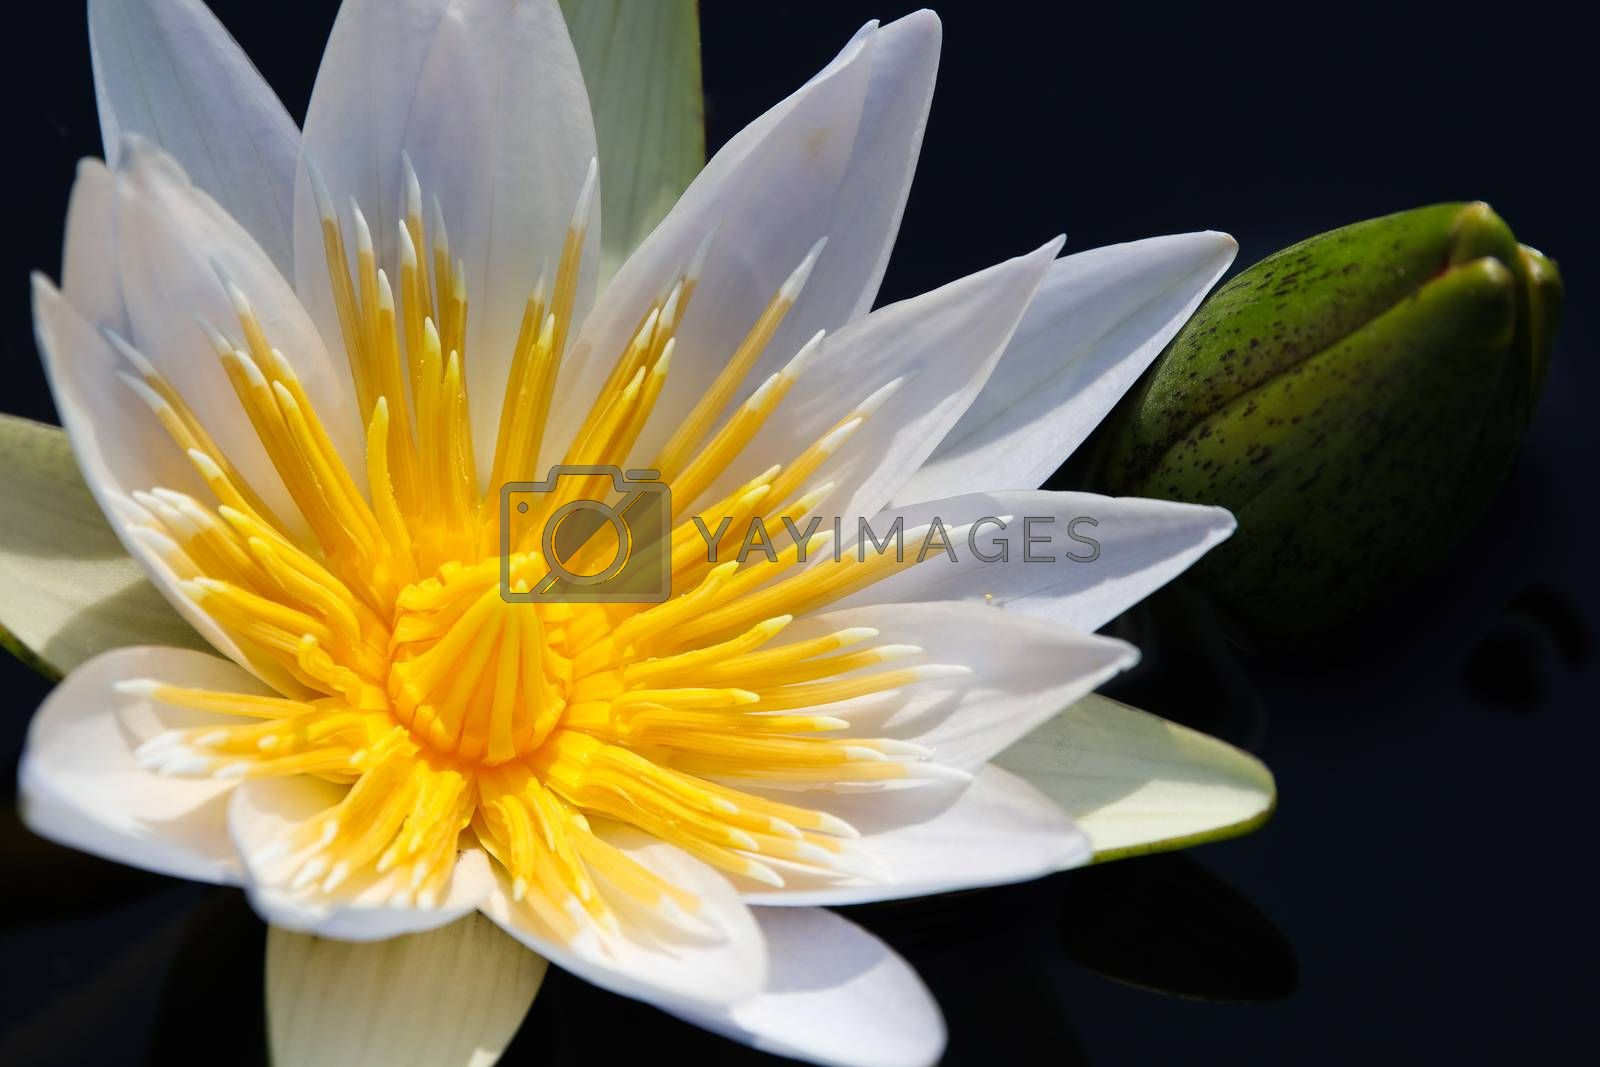 Radiant white star lotus waterlily (Nymphaea nouchali) and flower bulb close-up, Groot Marico, South Africa